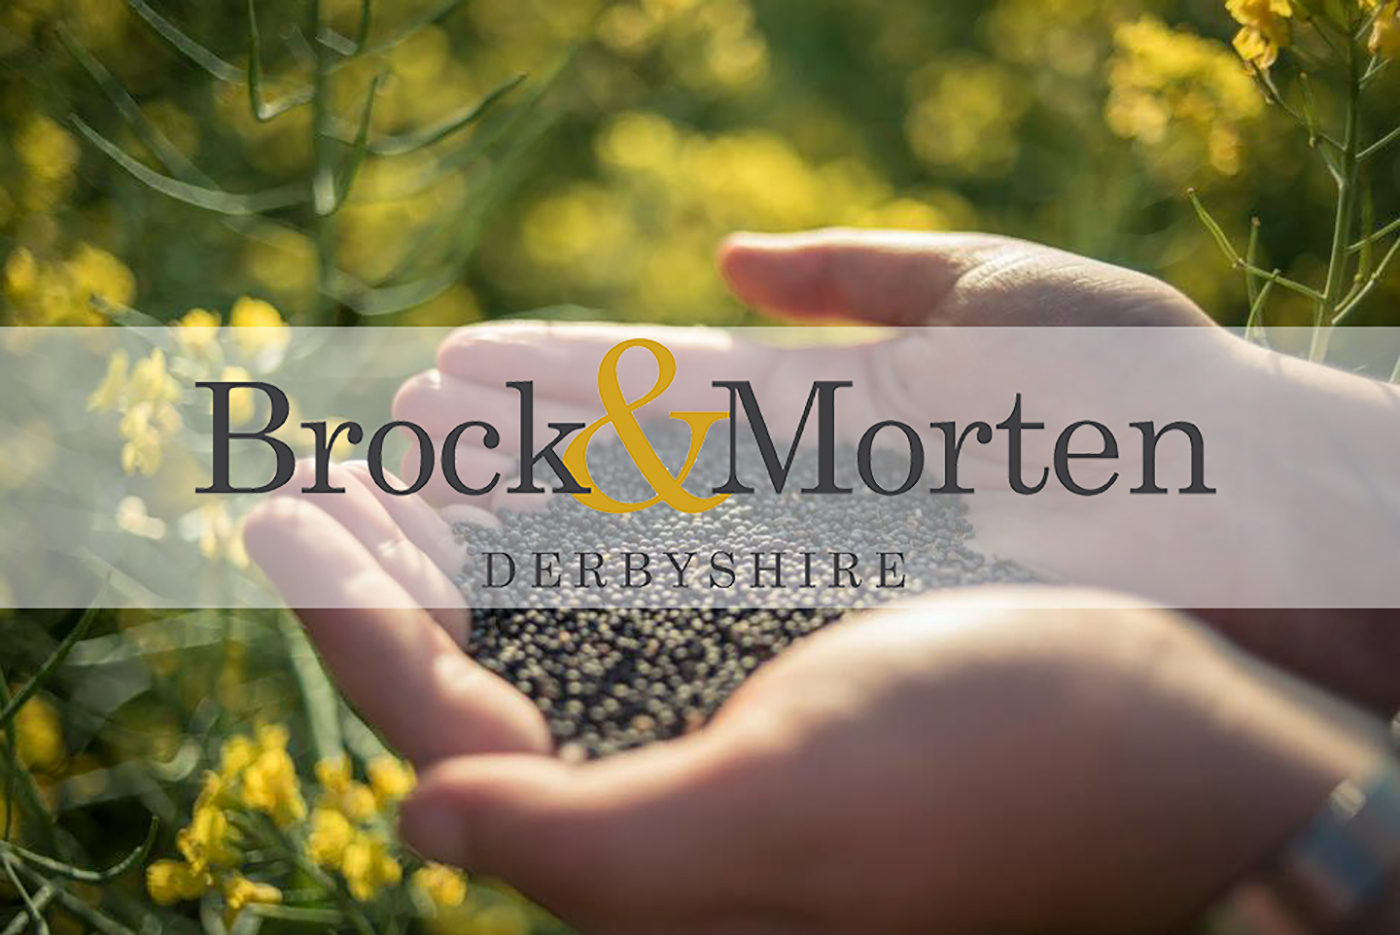 rapeseed oil producers Derbyshire